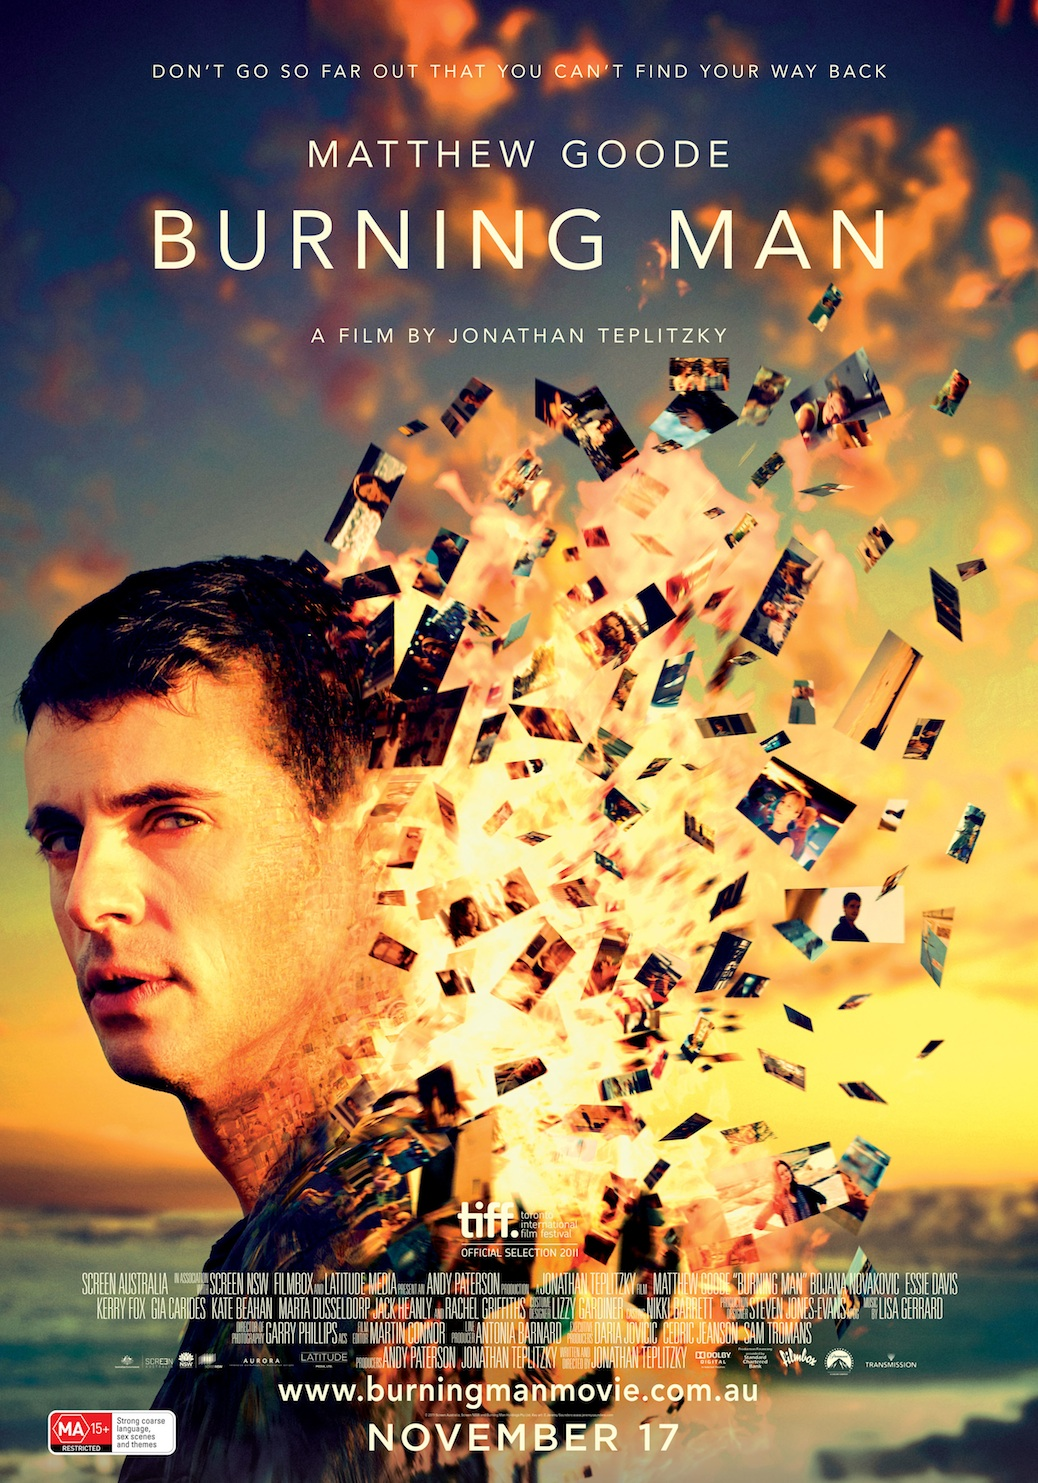 http://www.thereelbits.com/wp-content/uploads/2011/09/burning-man-poster002.jpg